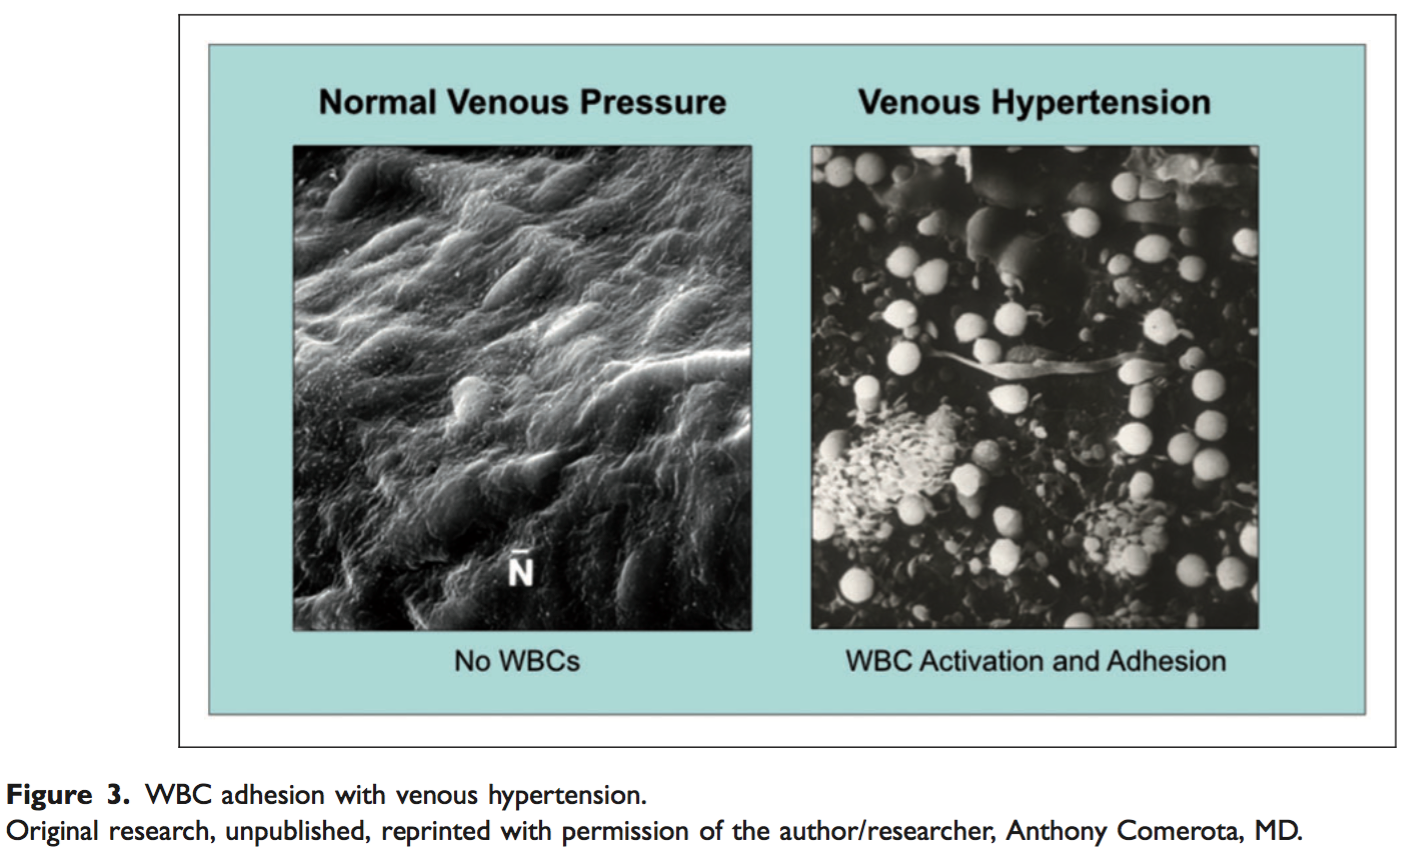 WBC adhesion  with venous hypertension